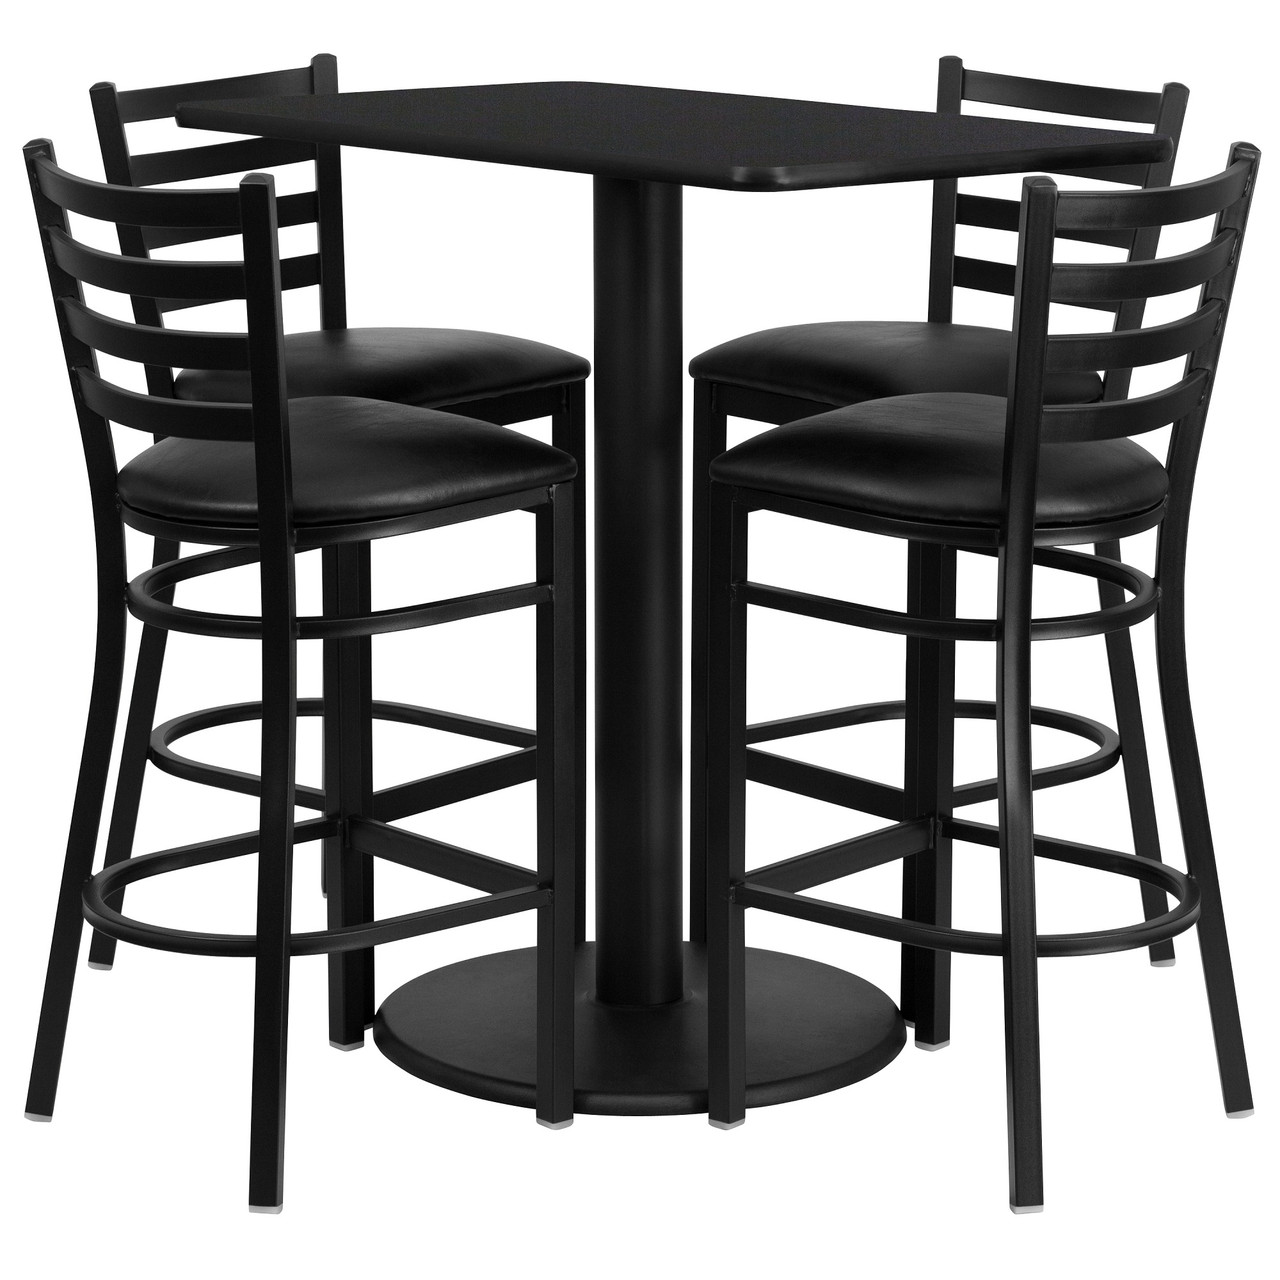 5 Piece Black Outdoor Furniture Patio Rectangular Table With Ladder Back Bar Stools 36 Christmas Central